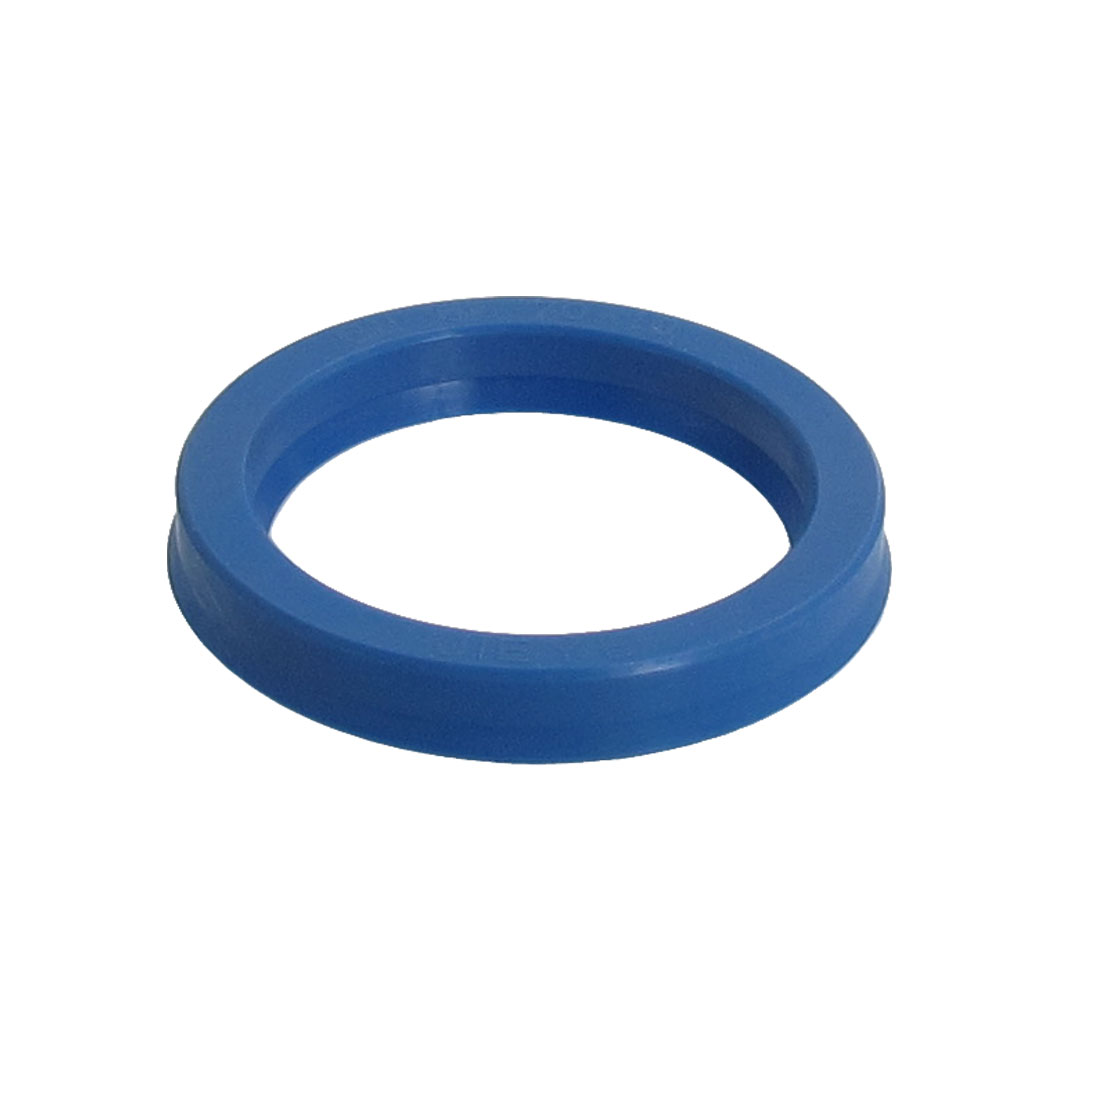 Blue PU 55mm x 70mm x 10mm Double Lip Sealing Cushion Dust Seal Ring